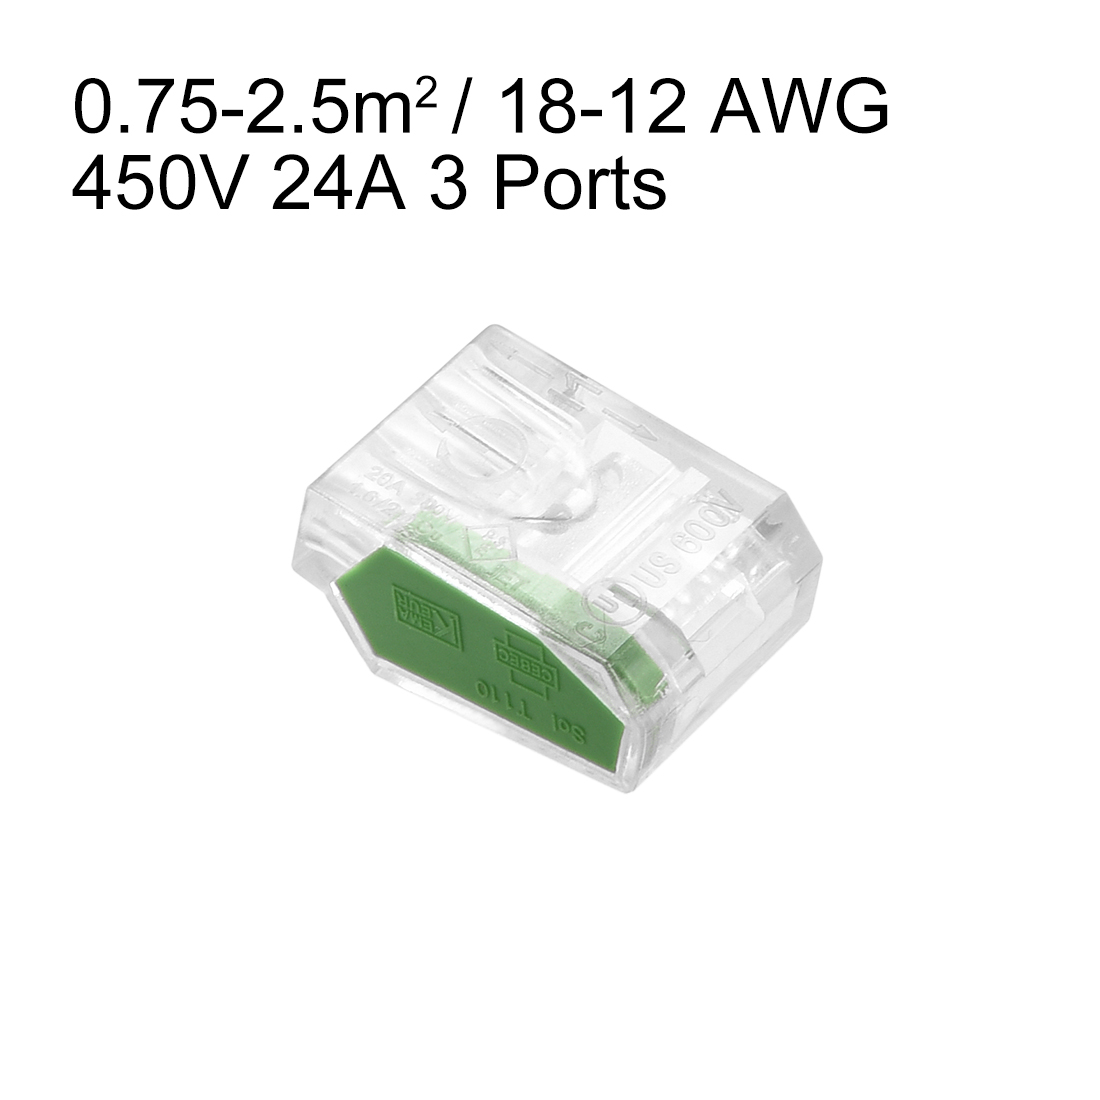 Push-In Electrical Wire Connectors 18-12 Awg 3-Port 450V Clear Green 10 Pcs - image 2 de 3